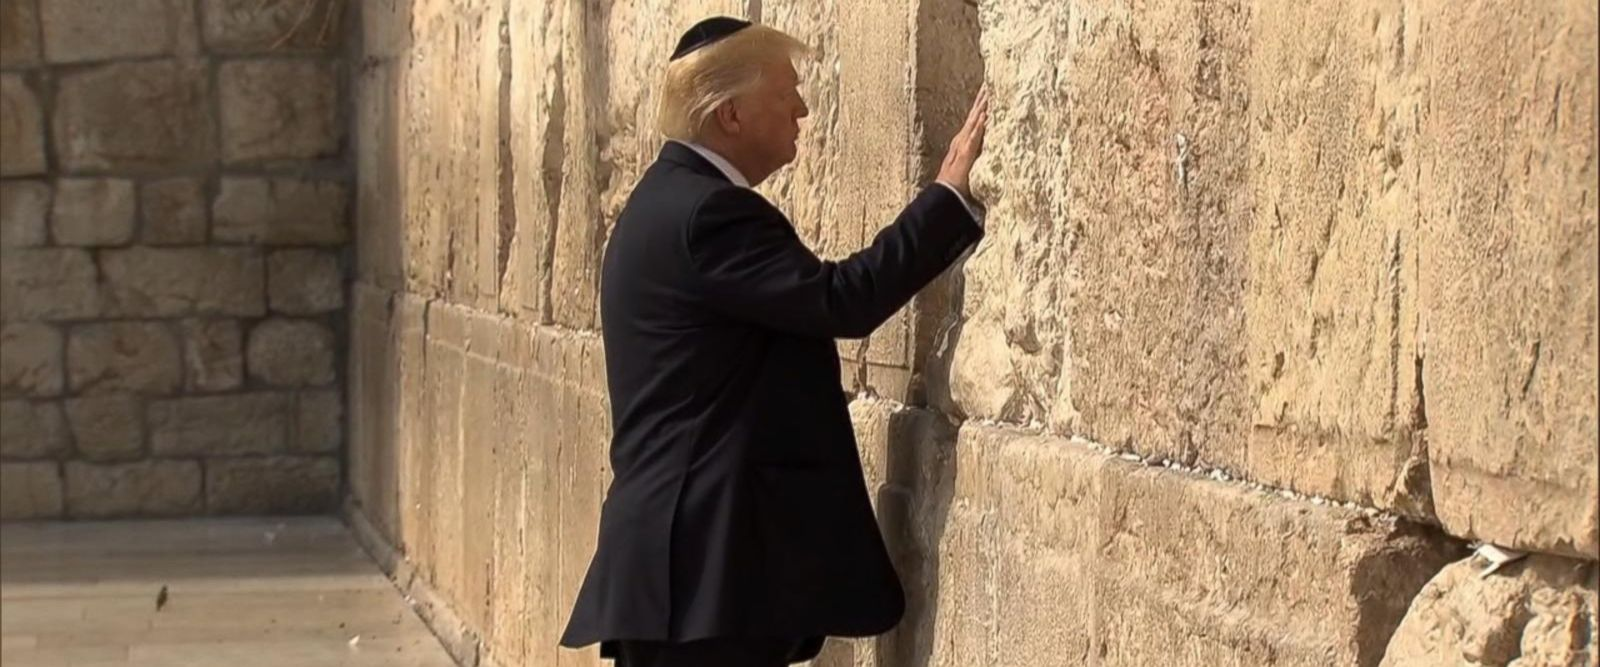 VIDEO: President Trump visits Israel on first foreign trip